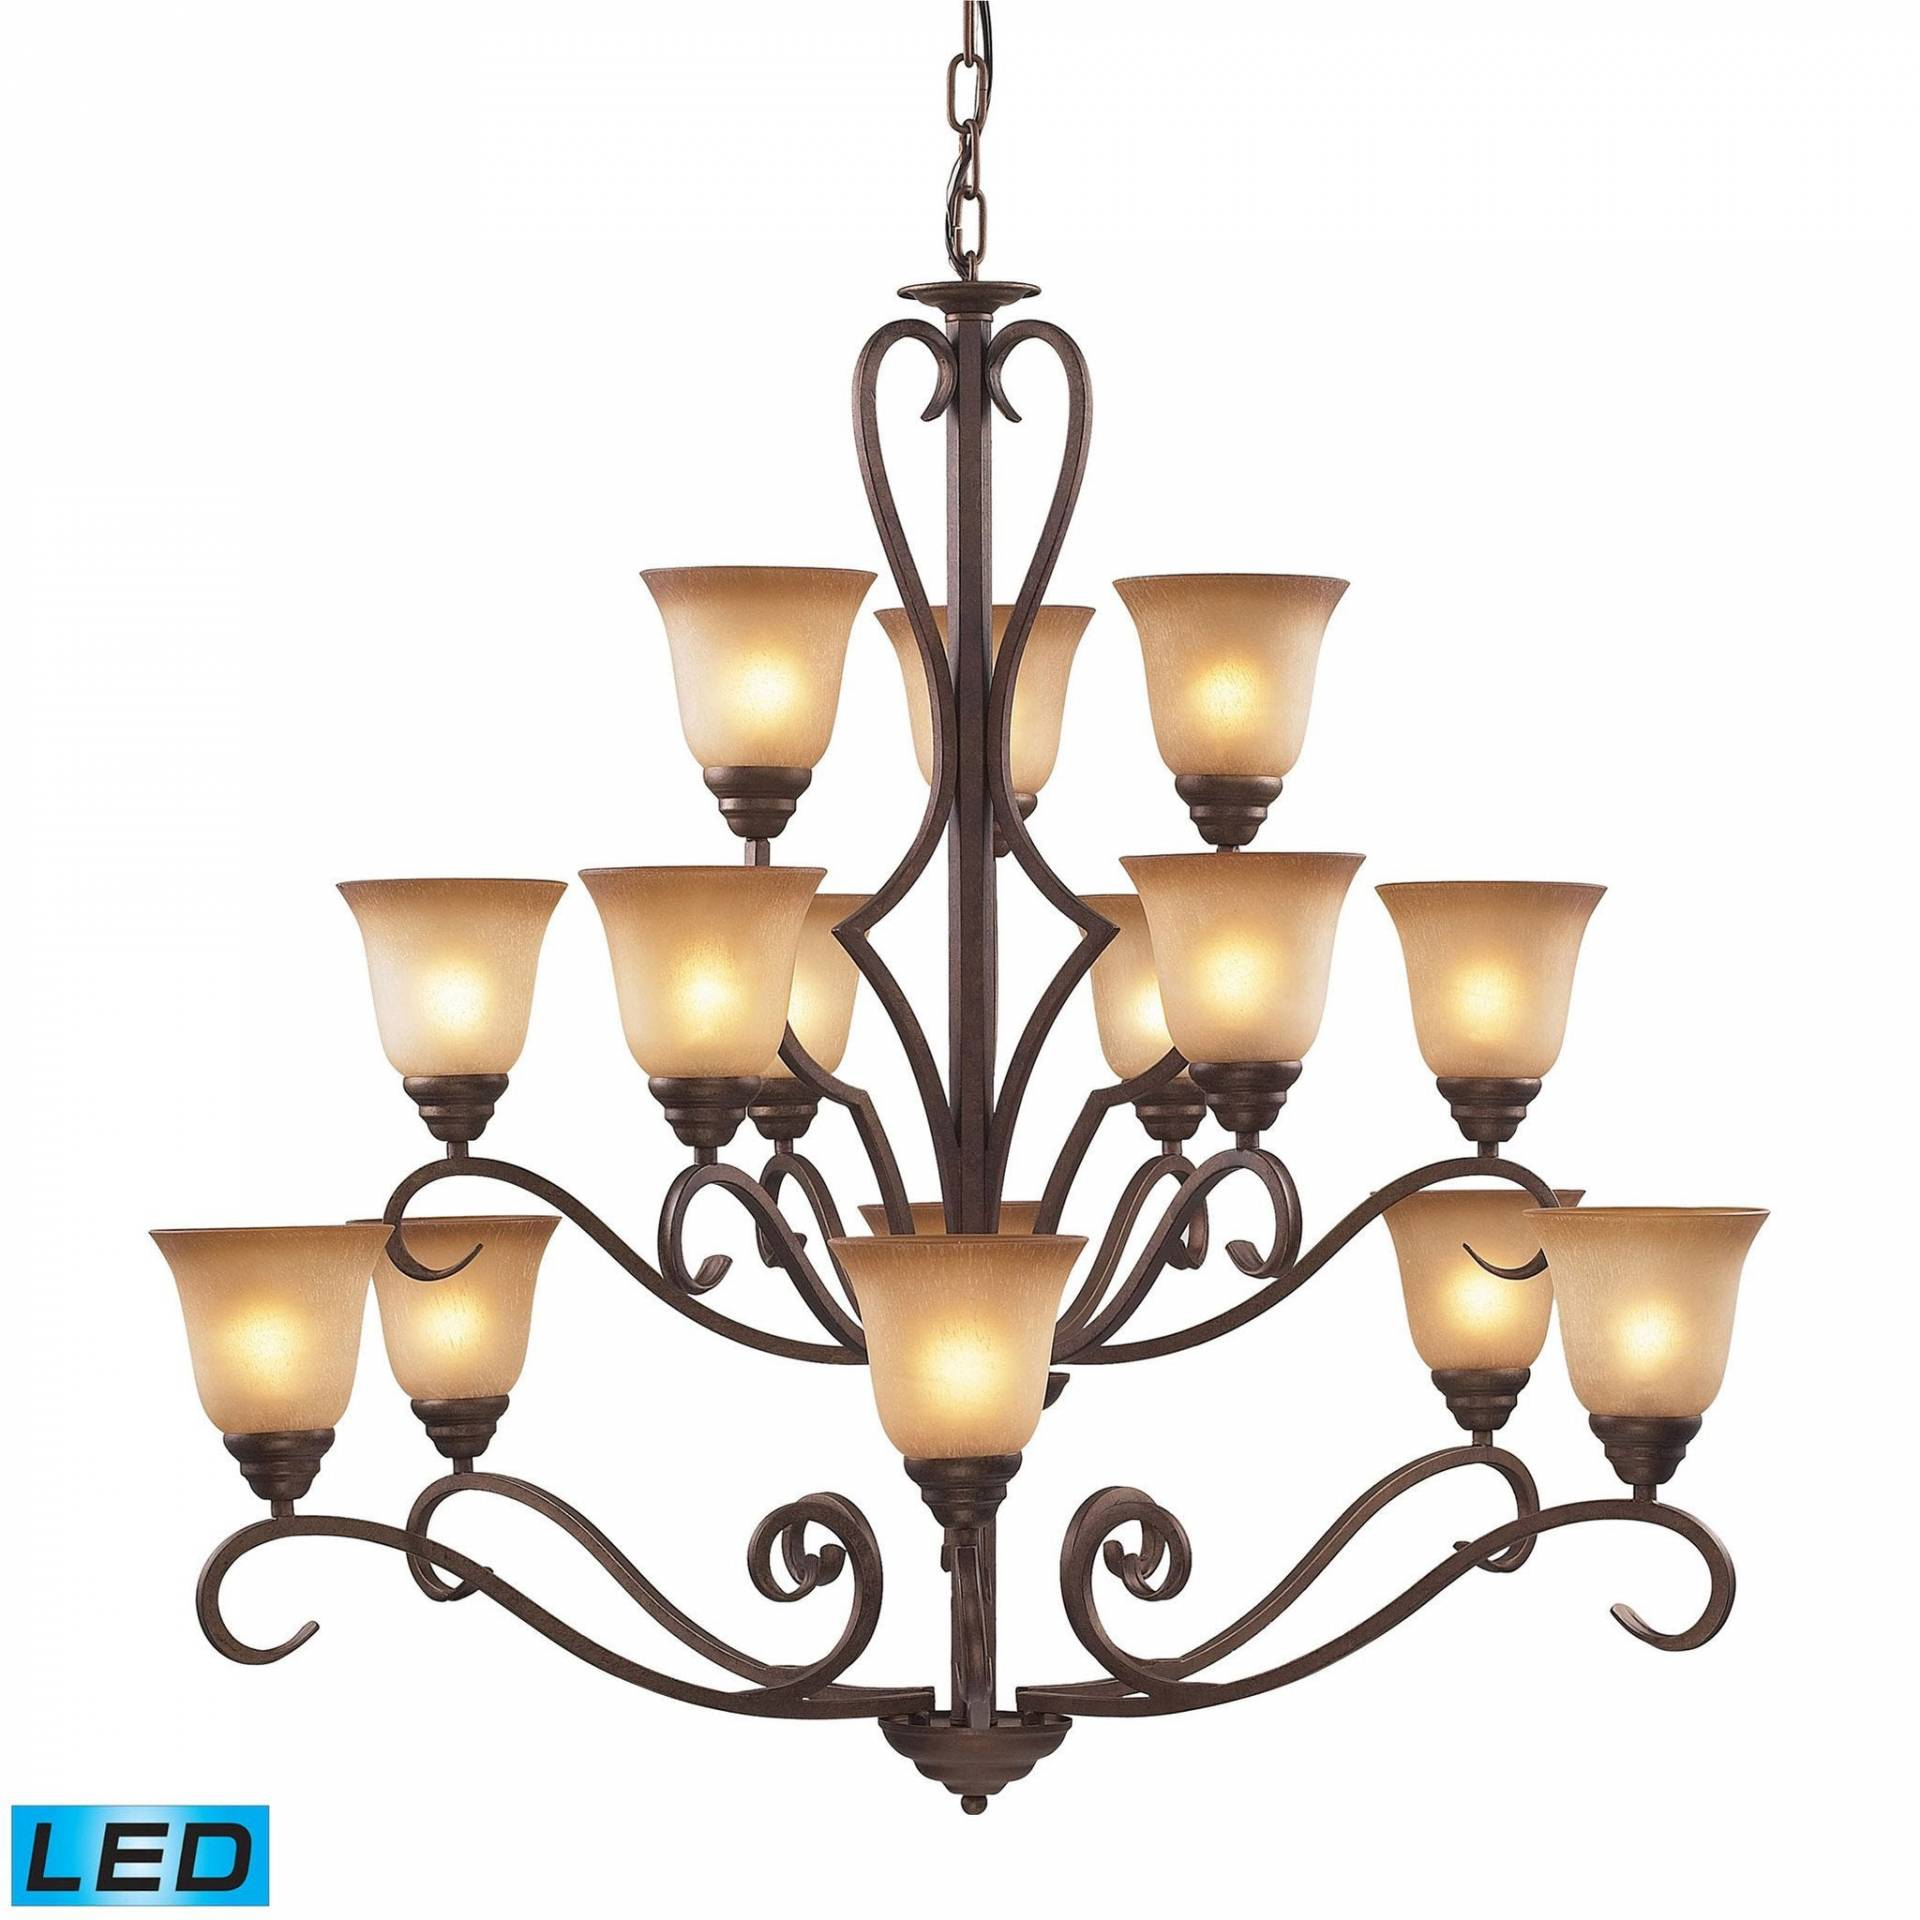 ELK Lighting 9330/6 6 3-LED Lawrenceville Collection Mocha Finish from ELK Lighting